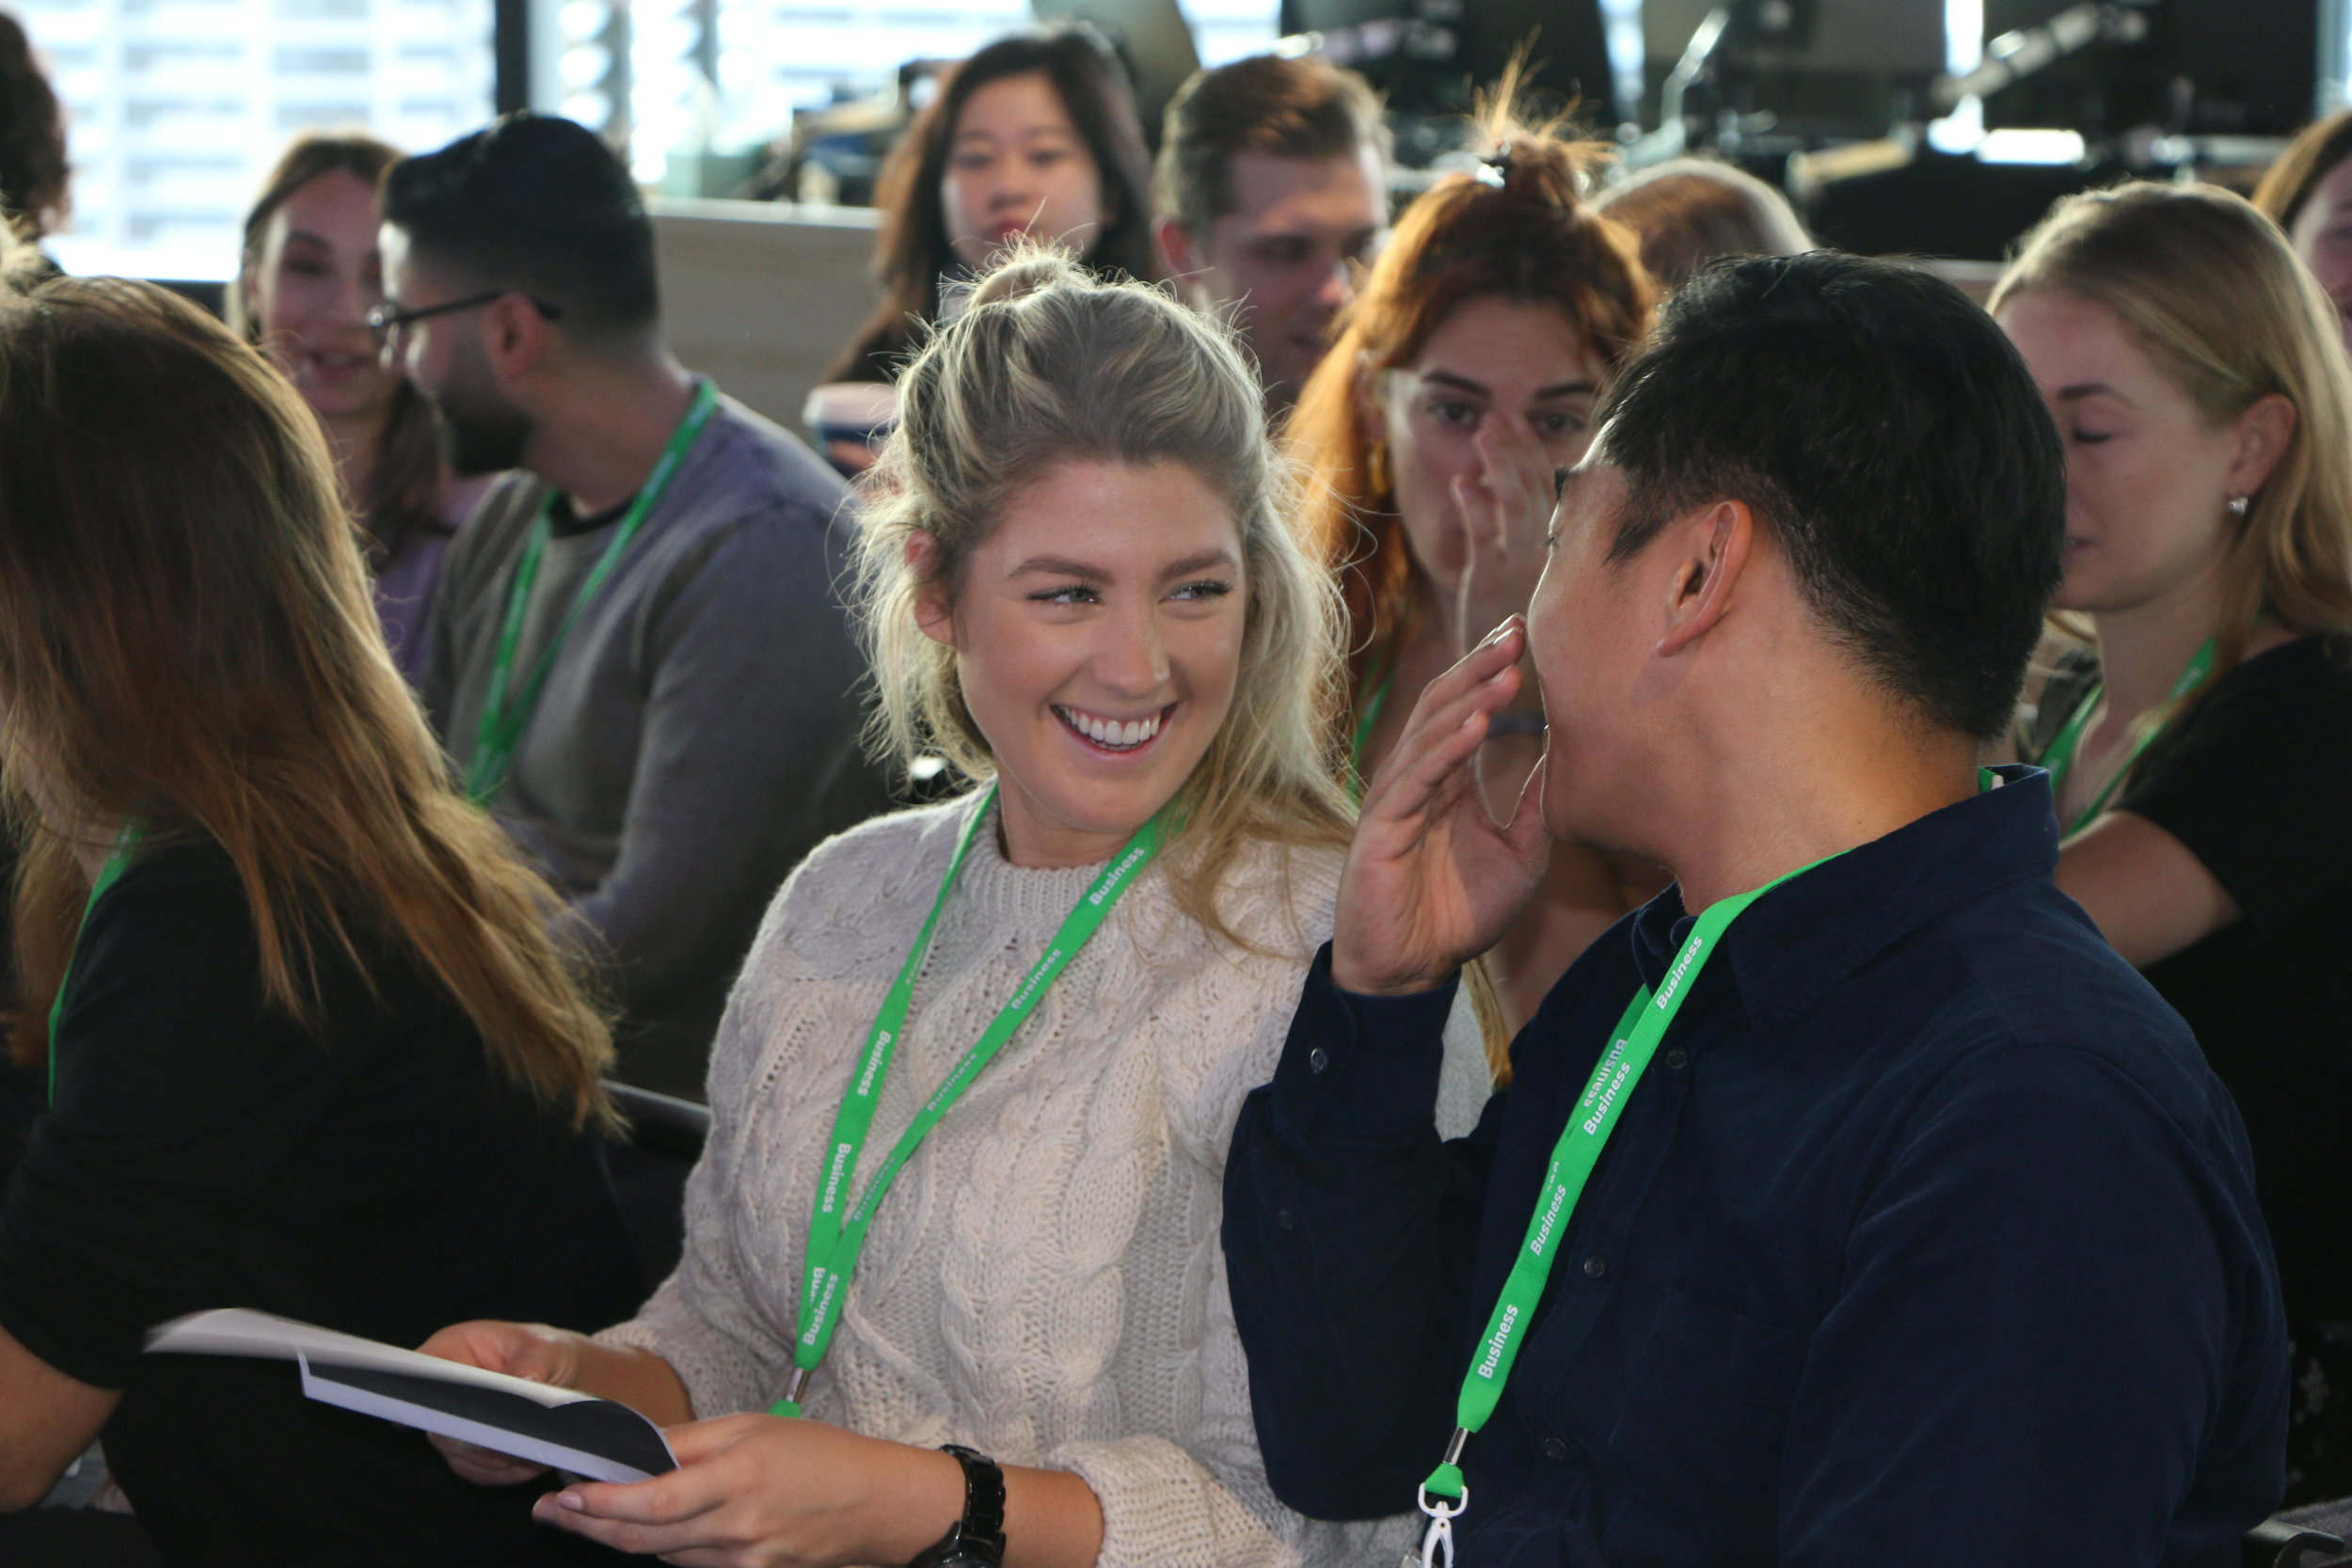 The NGEN cohort learn more about confidence at Facebook headquarters in Sydney.